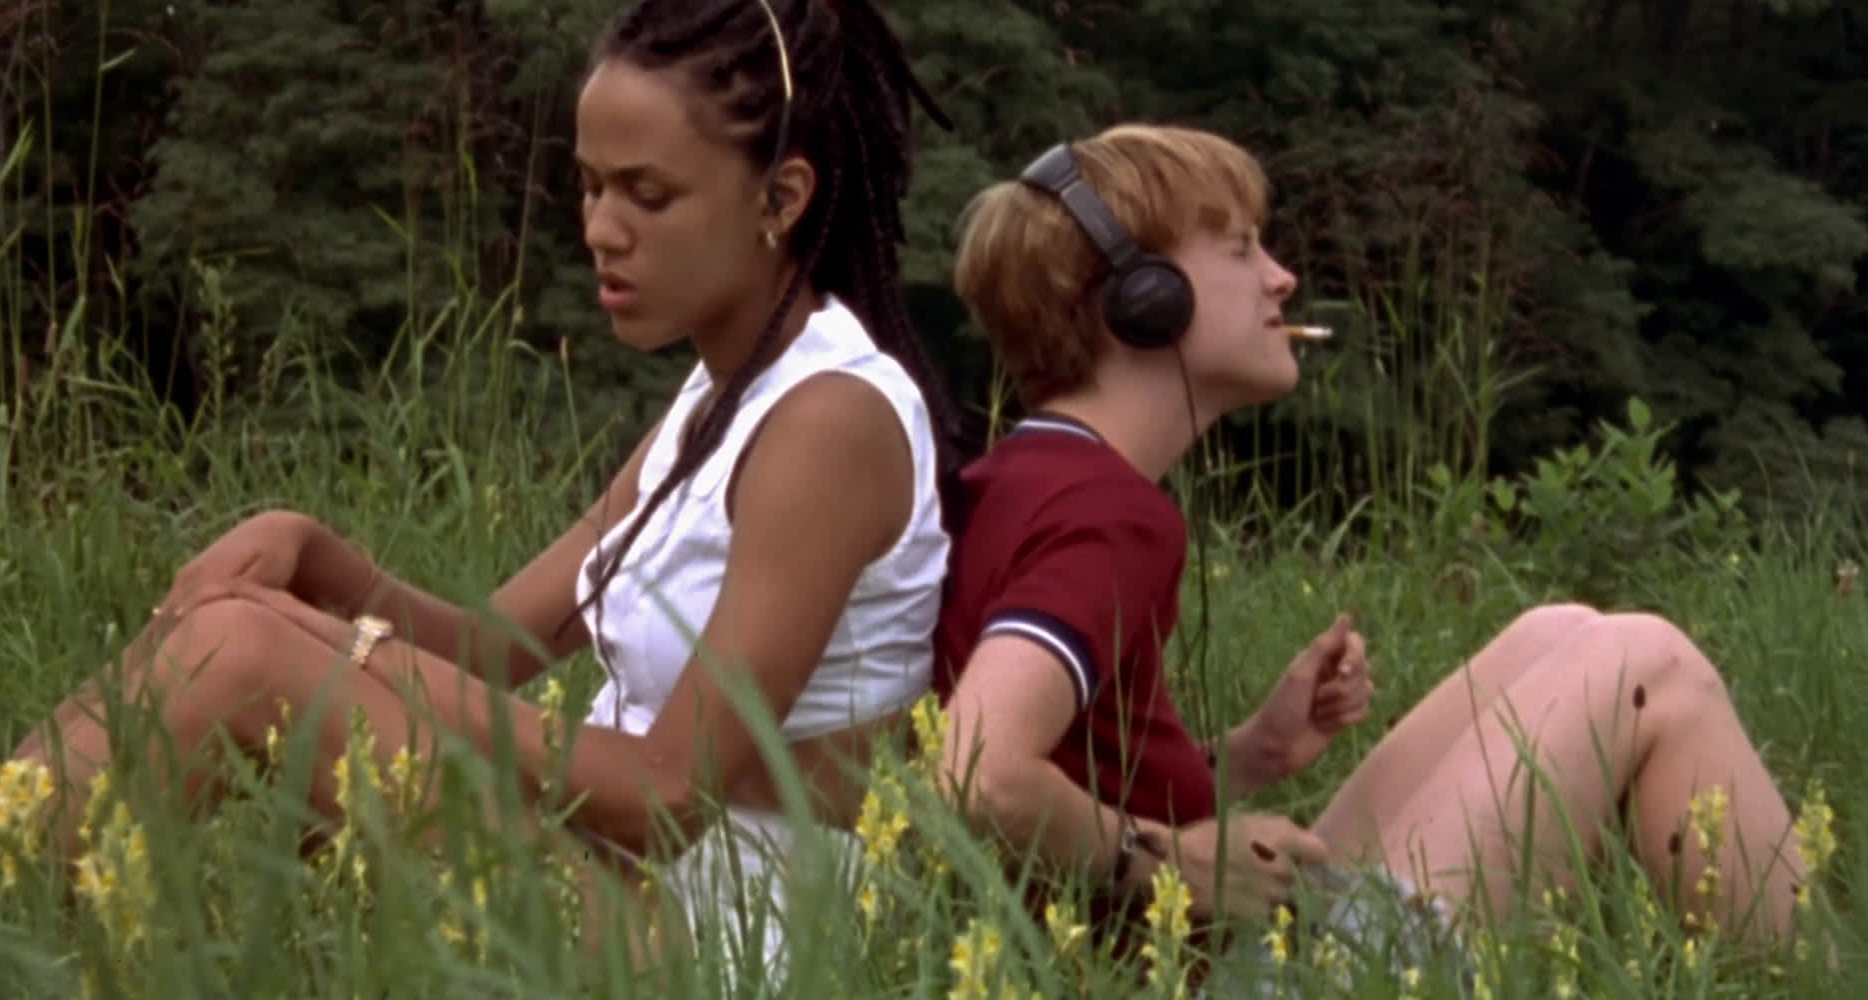 The Best Lesbian Movies With Happy Endings